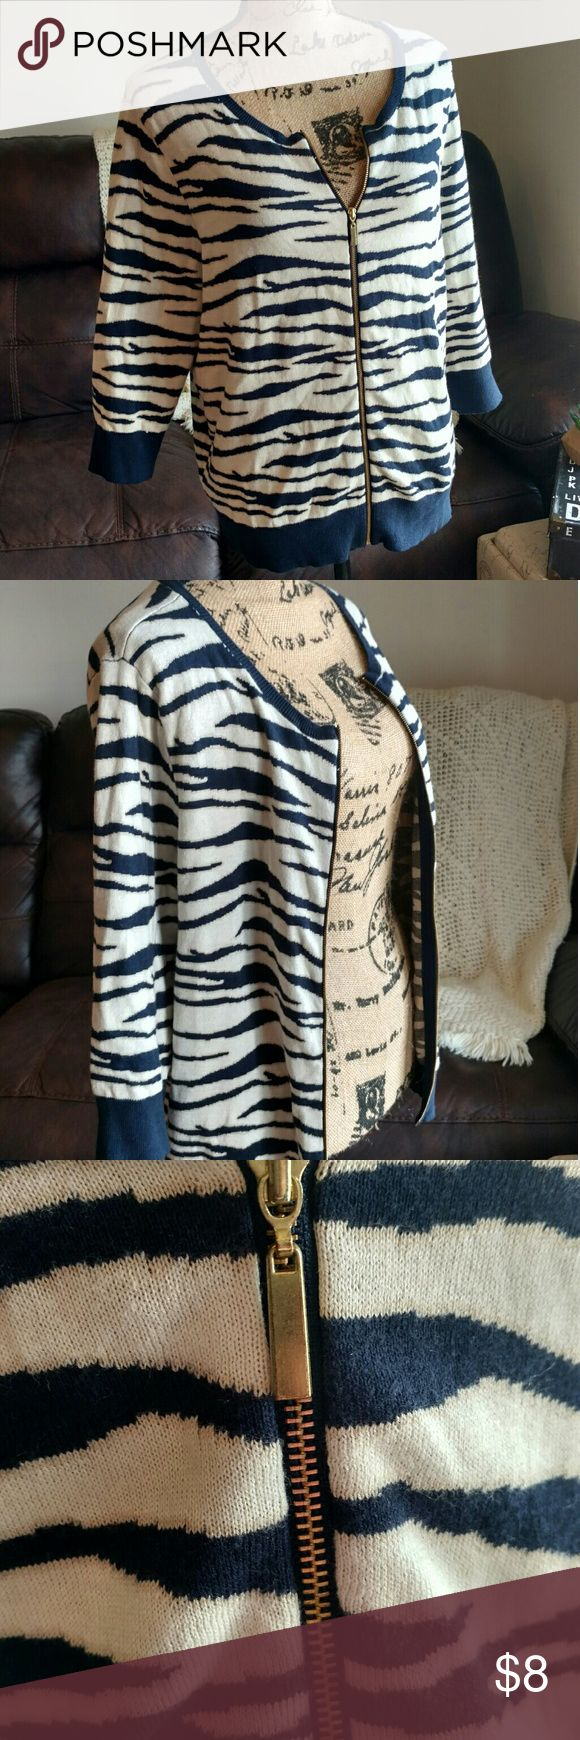 🌻 Cato zebra print zip up sweater size 14-16W Cato Navy and Cream zip up zebra print sweater with gold zipper. No holes or stains, however note that the bottom is slightly wavy.  Size 14-16W Cato Sweaters Cardigans